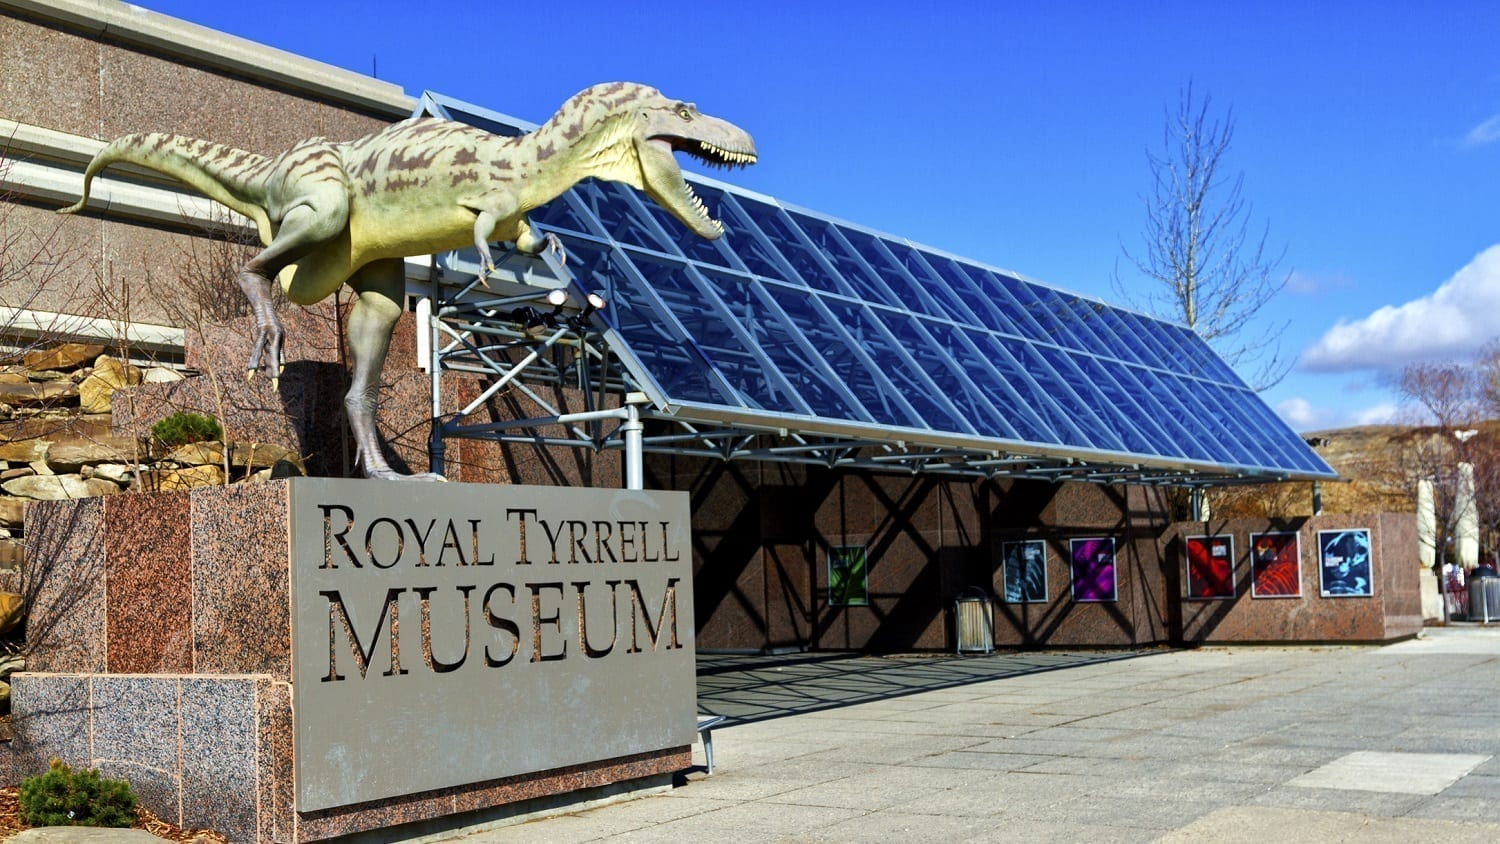 Royal Tyrrell Museum entrance: ID 40212929 © Martial Genest | Dreamstime.com